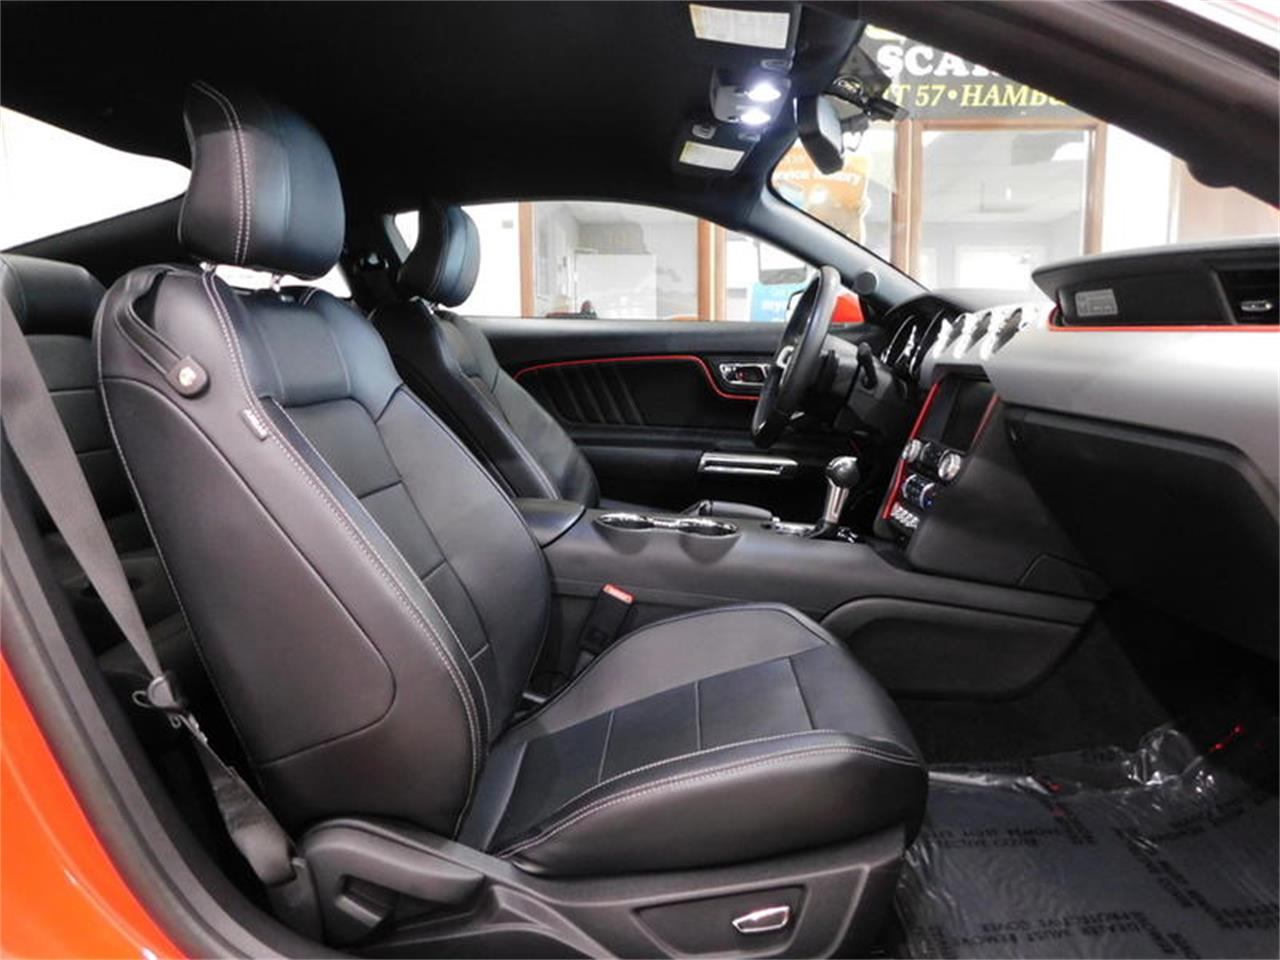 2015 Ford Mustang for sale in Hamburg, NY – photo 55